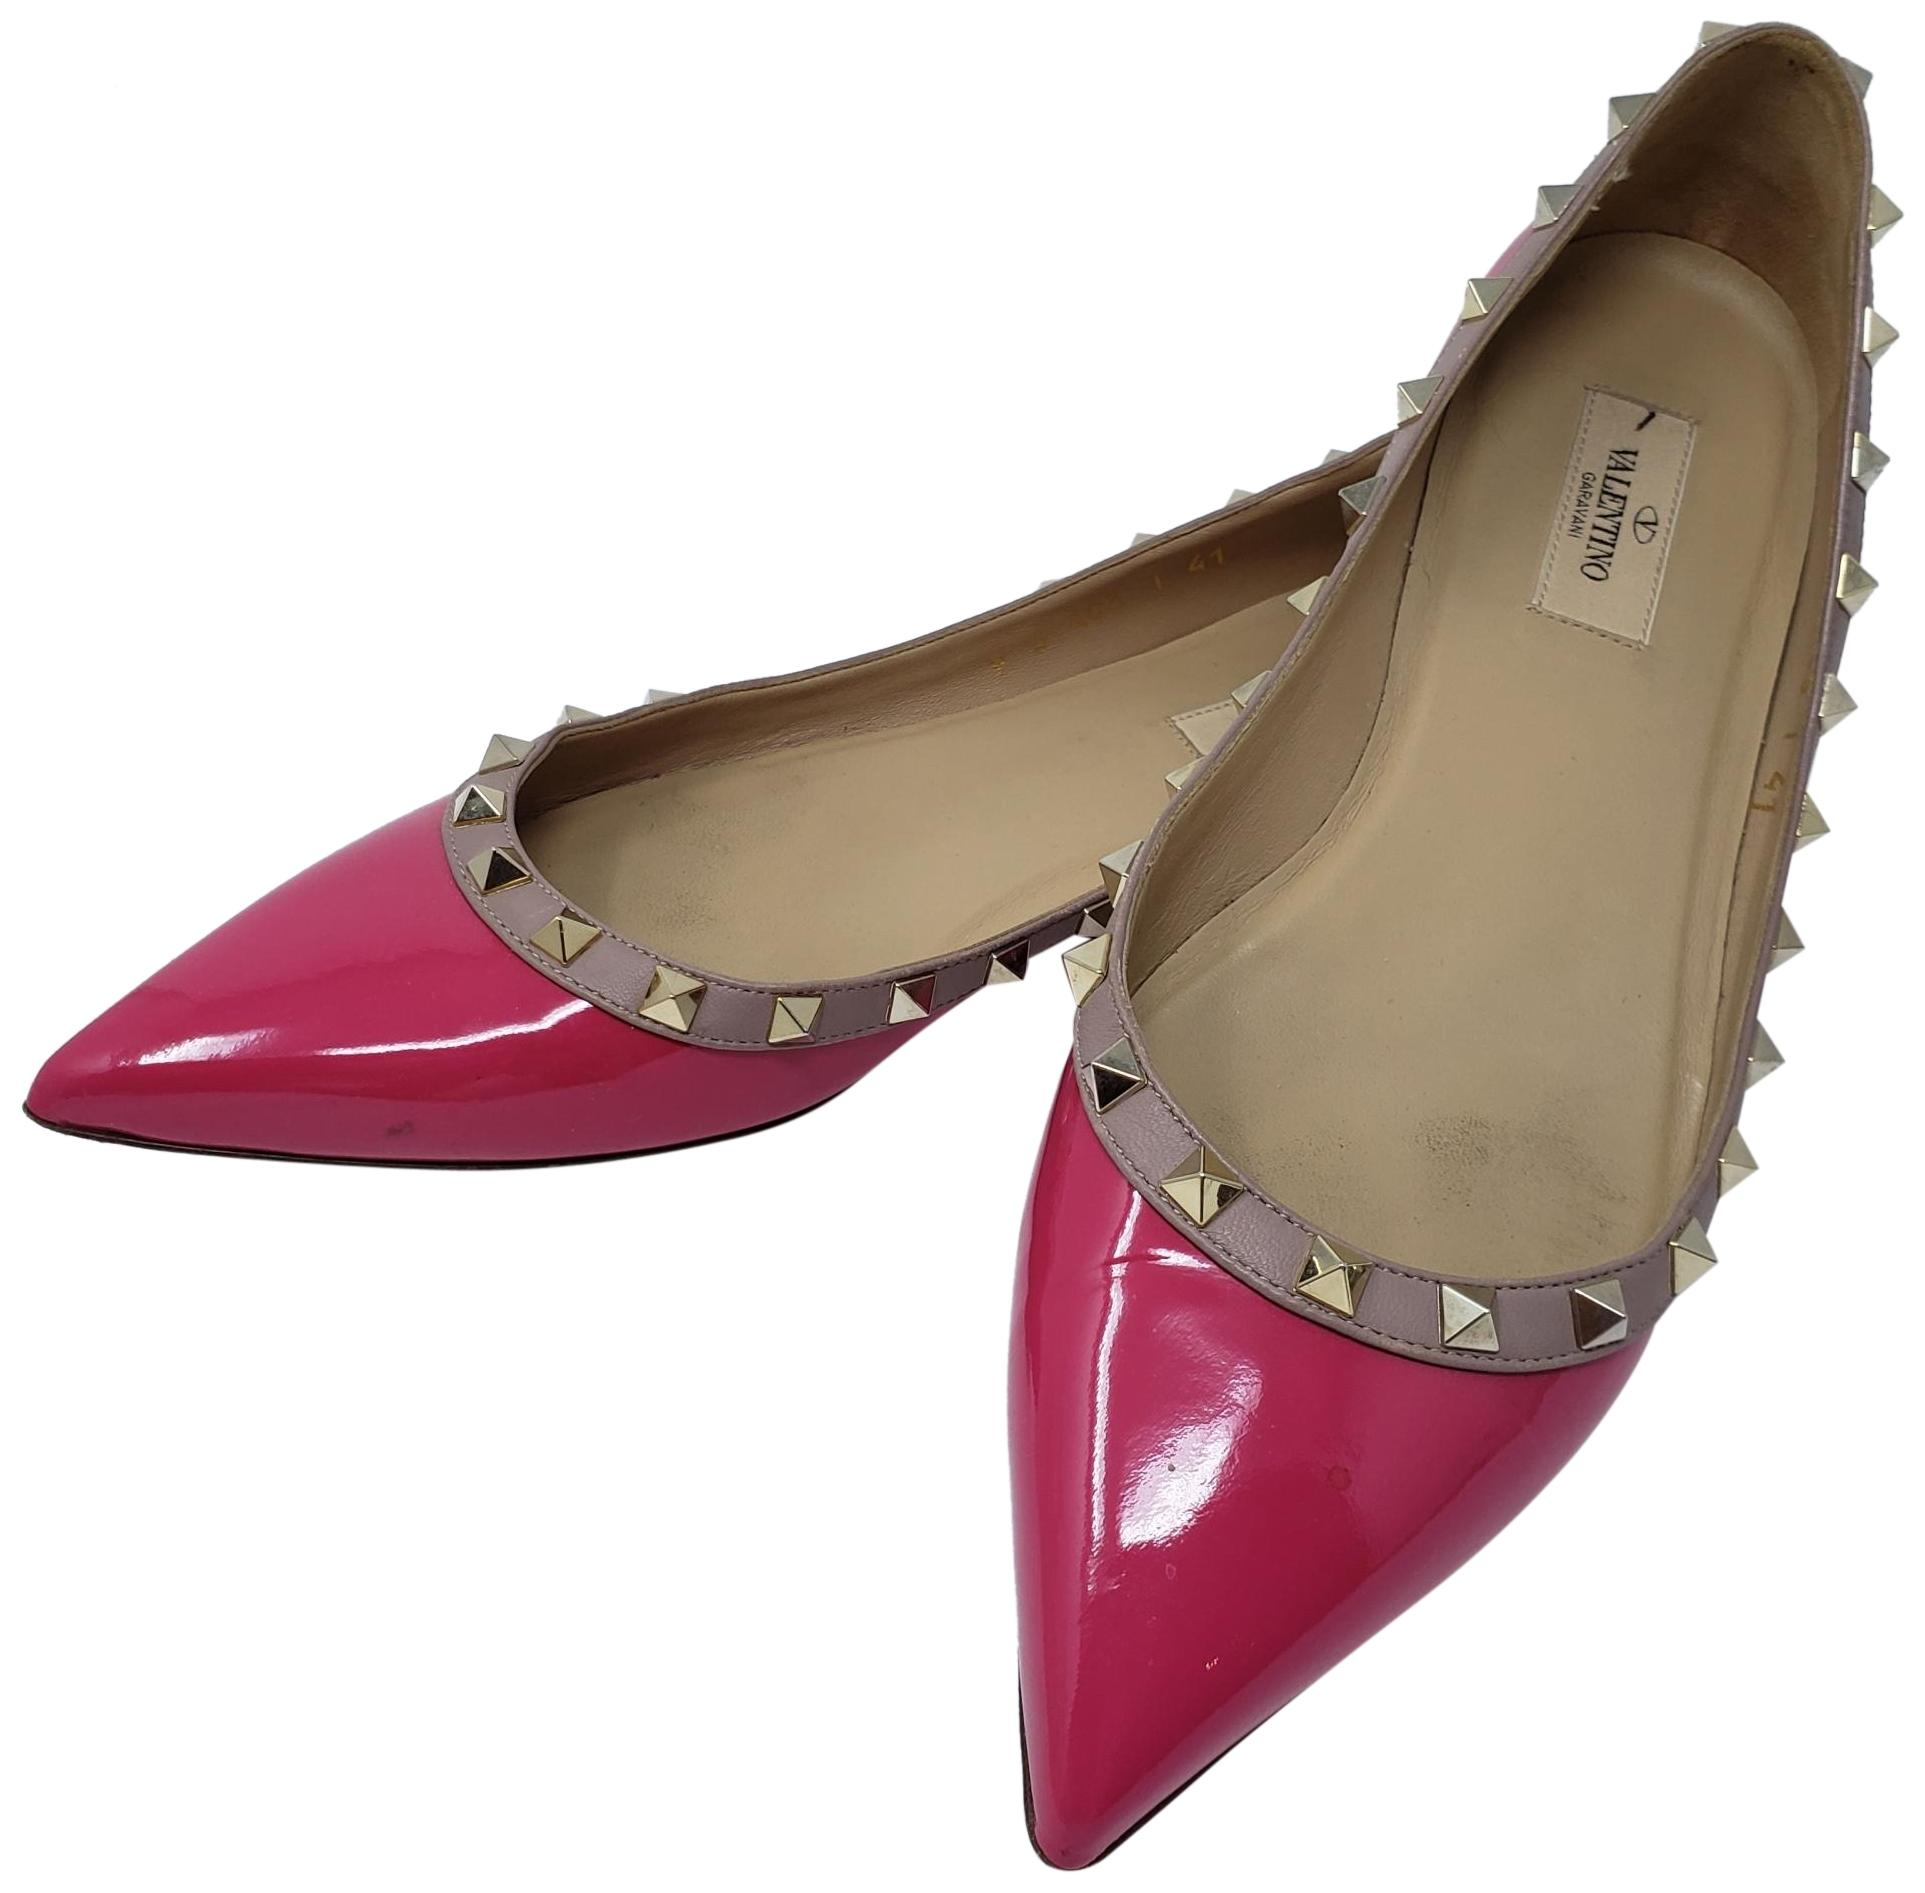 6437aa173 Valentino Pink Gold Patent Leather Rockstud Pointed-toe Flats Flats Flats  Size EU 41 (Approx. US 11) Regular (M